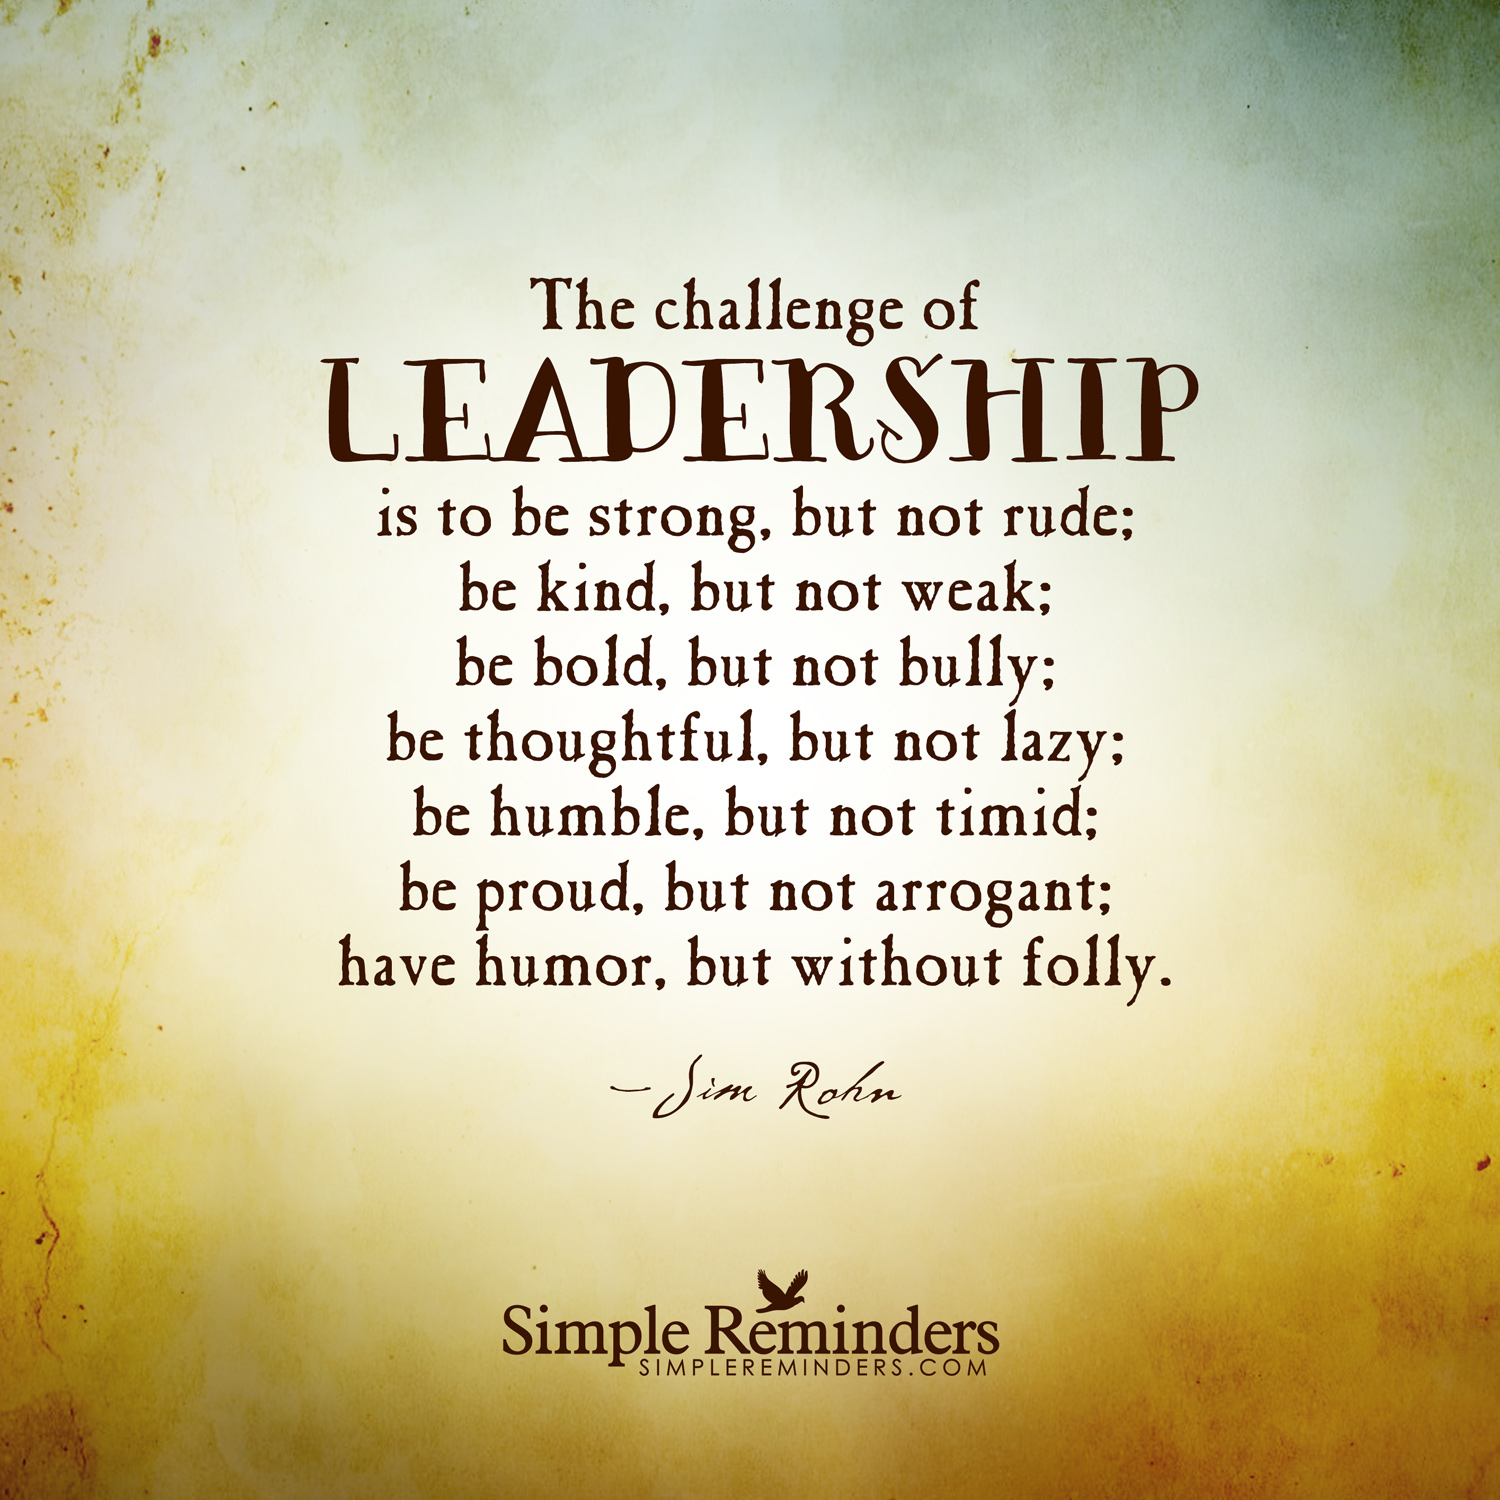 Quotes About Challenges: The Leadership Challenge Quotes. QuotesGram